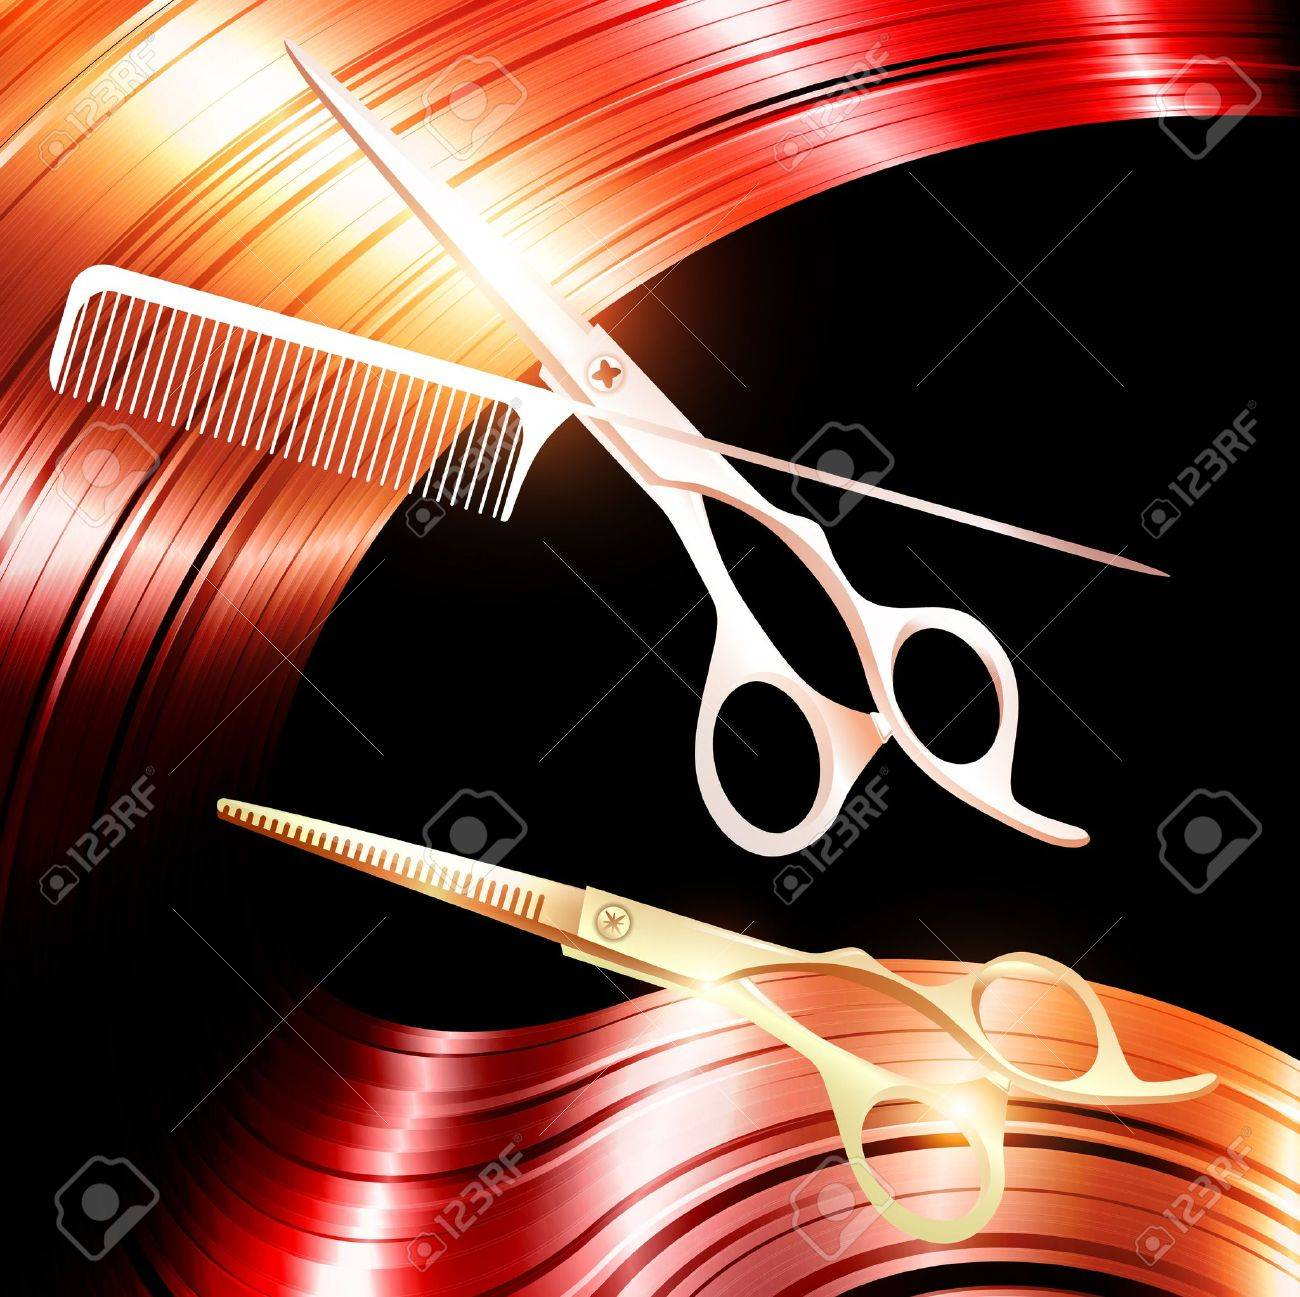 Hair and cutting scissors with metal pin tail comb - 13111233